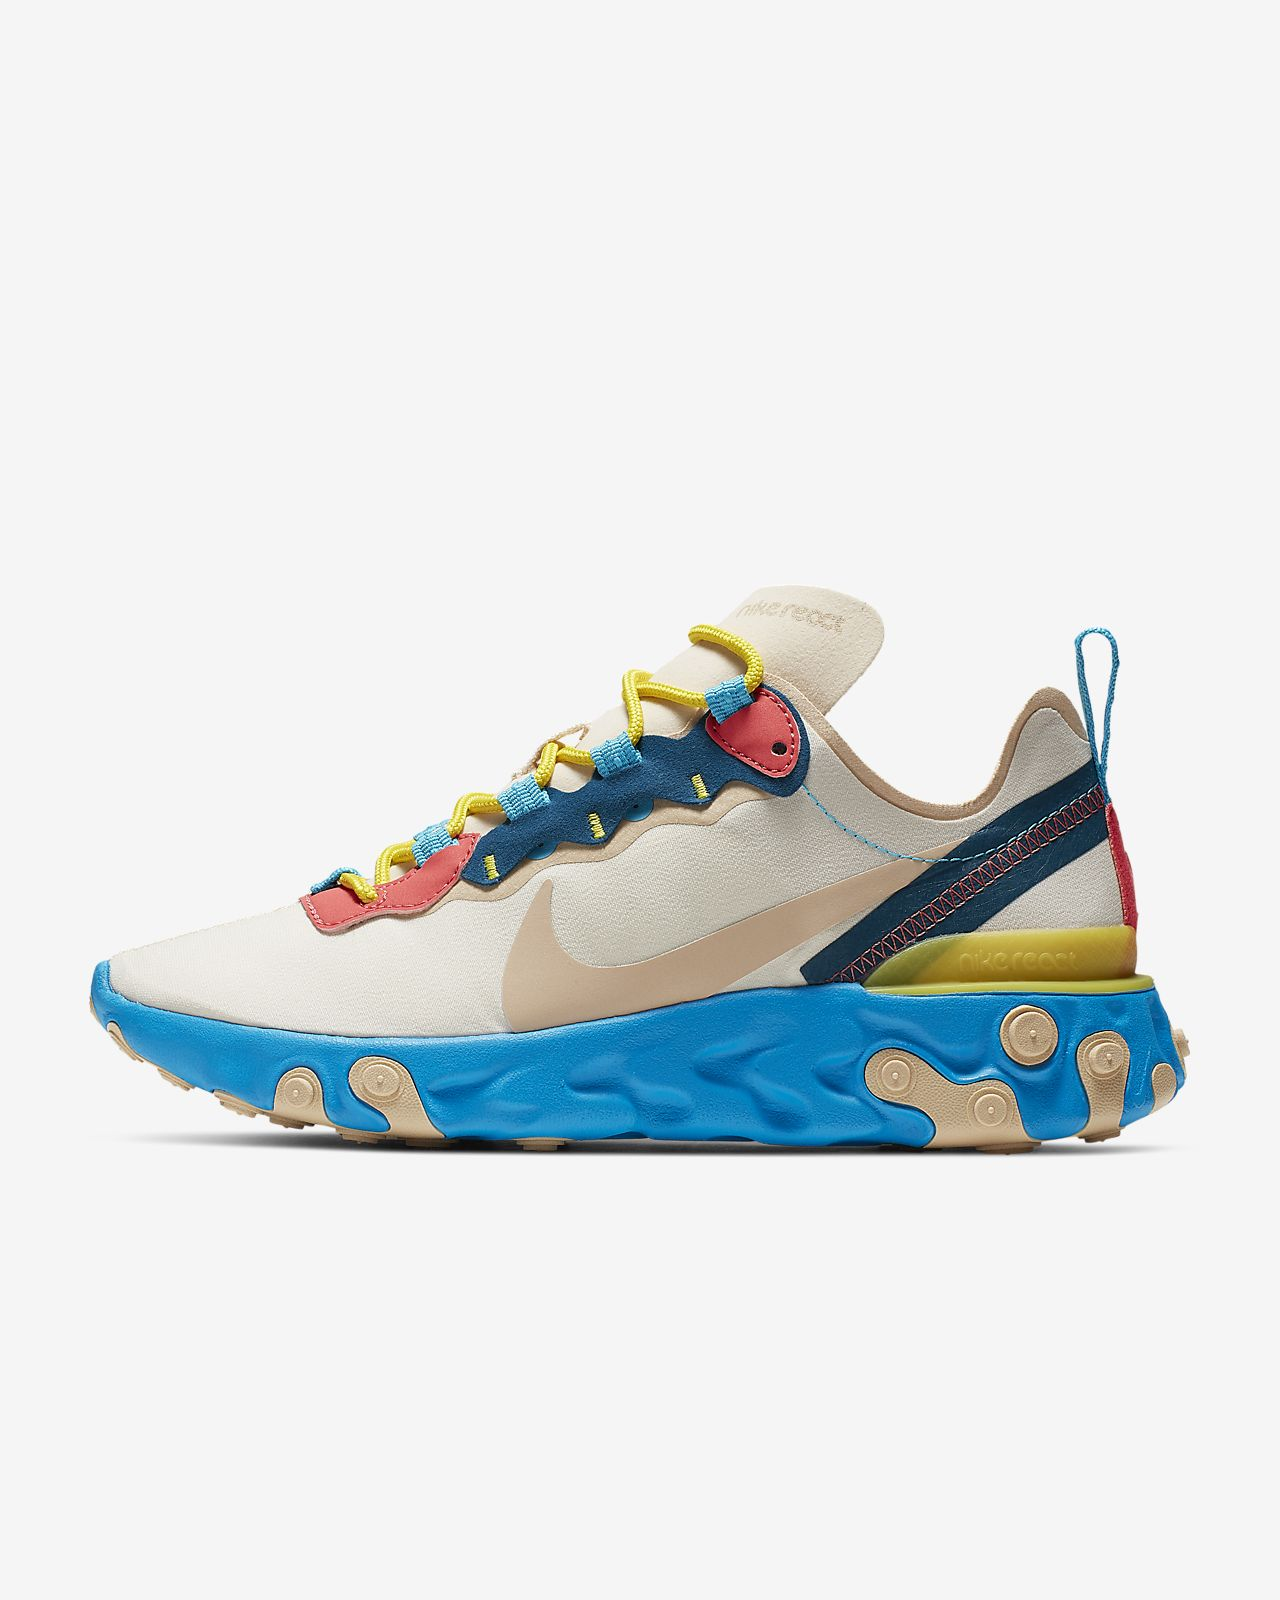 new arrival 79eb6 35b33 ... Chaussure Nike React Element 55 pour Femme